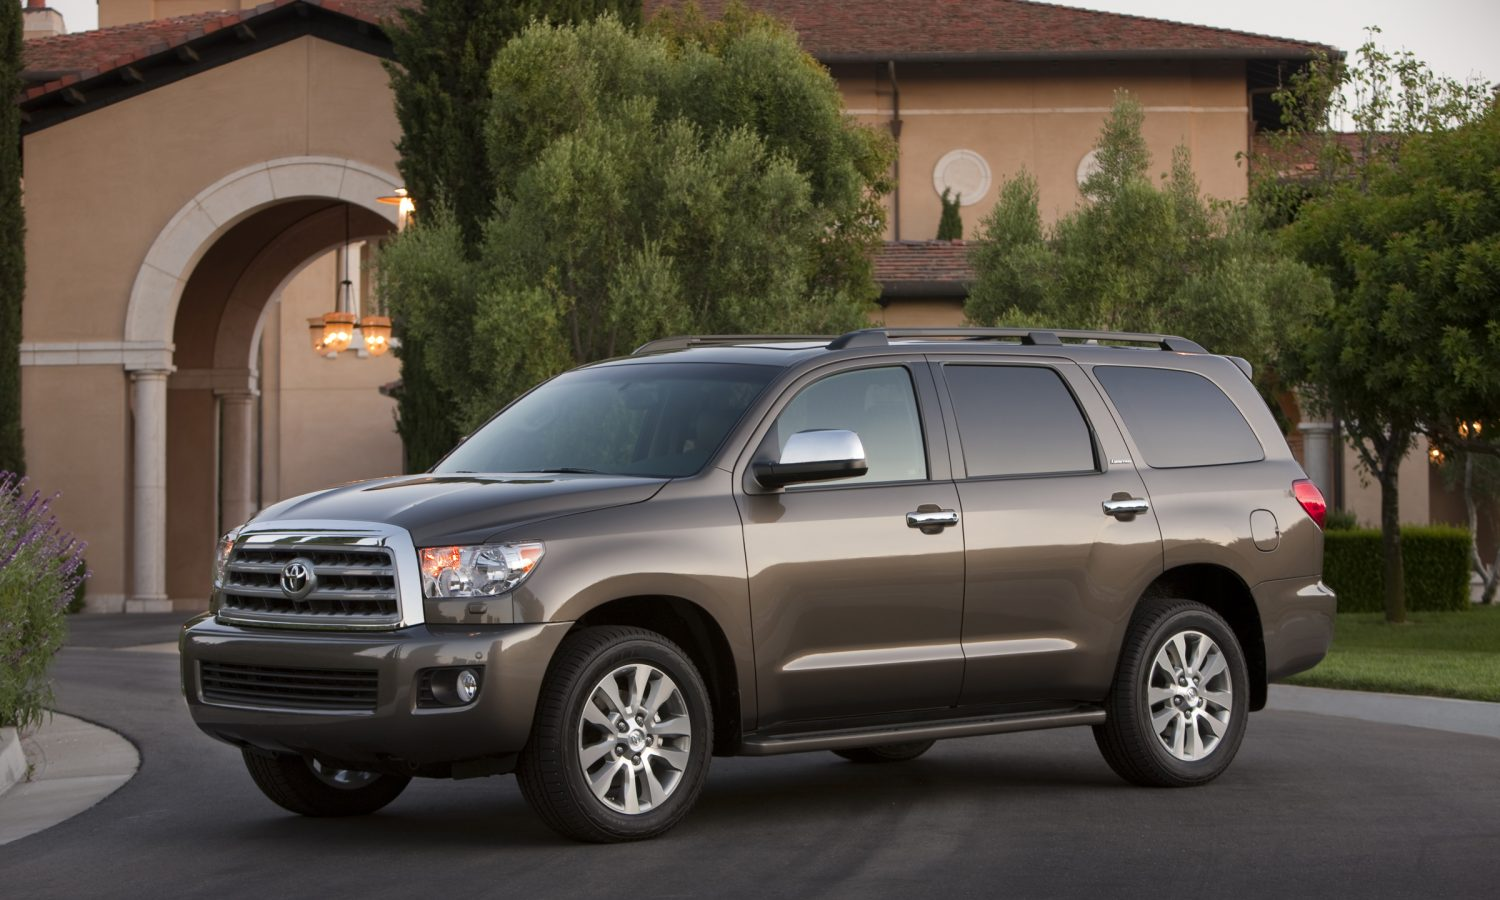 2017 Toyota Sequoia Lives Up to Its Name with Big Power, Roominess, and Capability